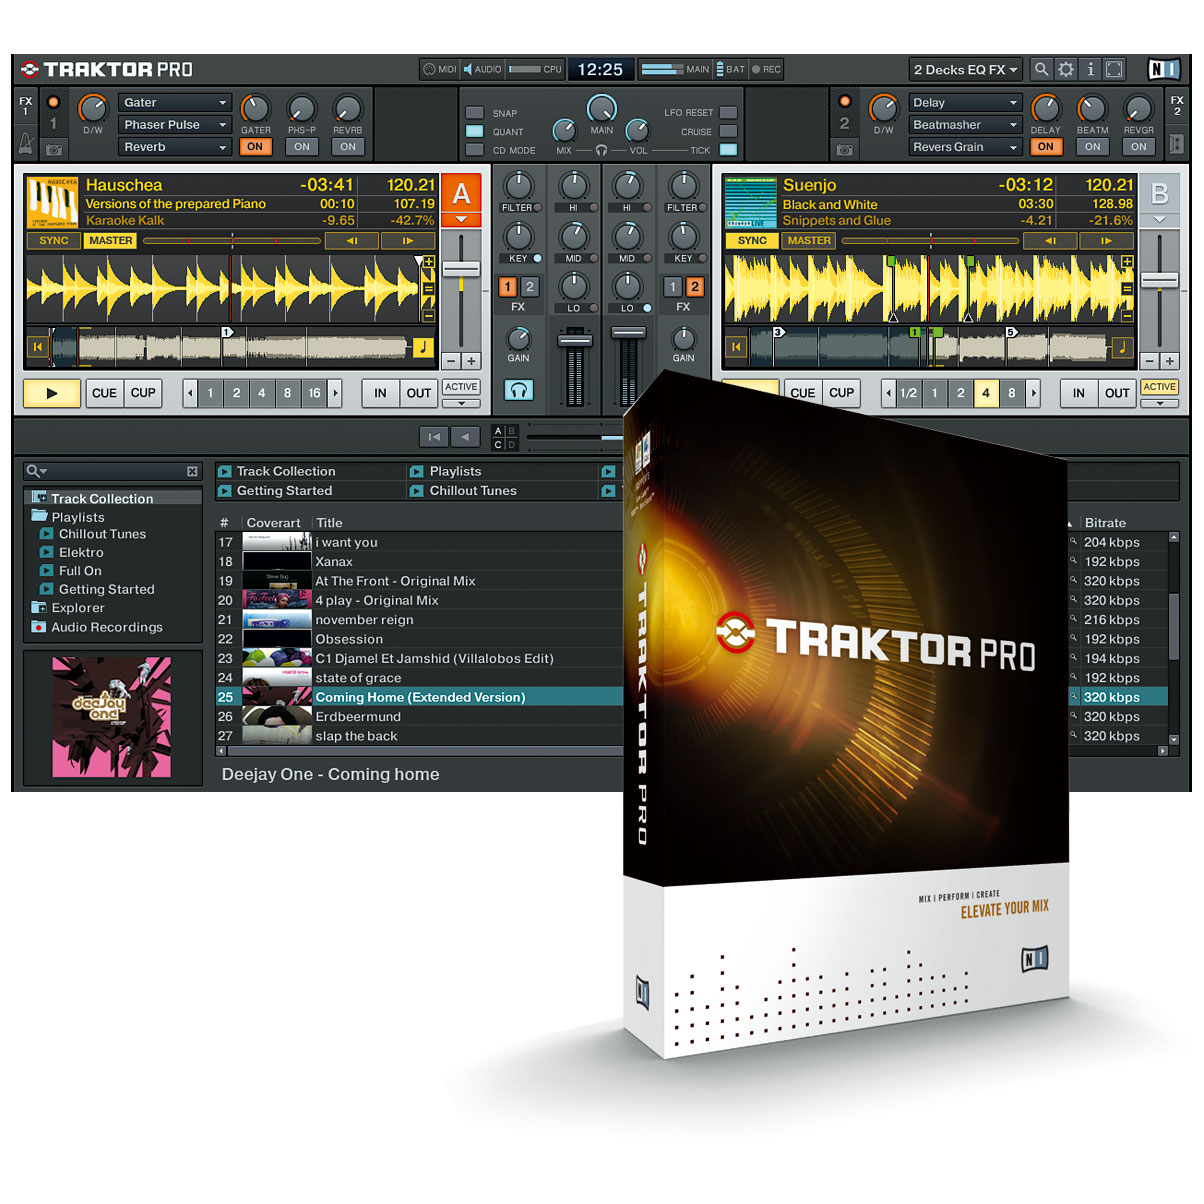 39020-native-instruments-traktor-pro-upgrade-from-traktor-3-3le--largeTraktor Pro 3